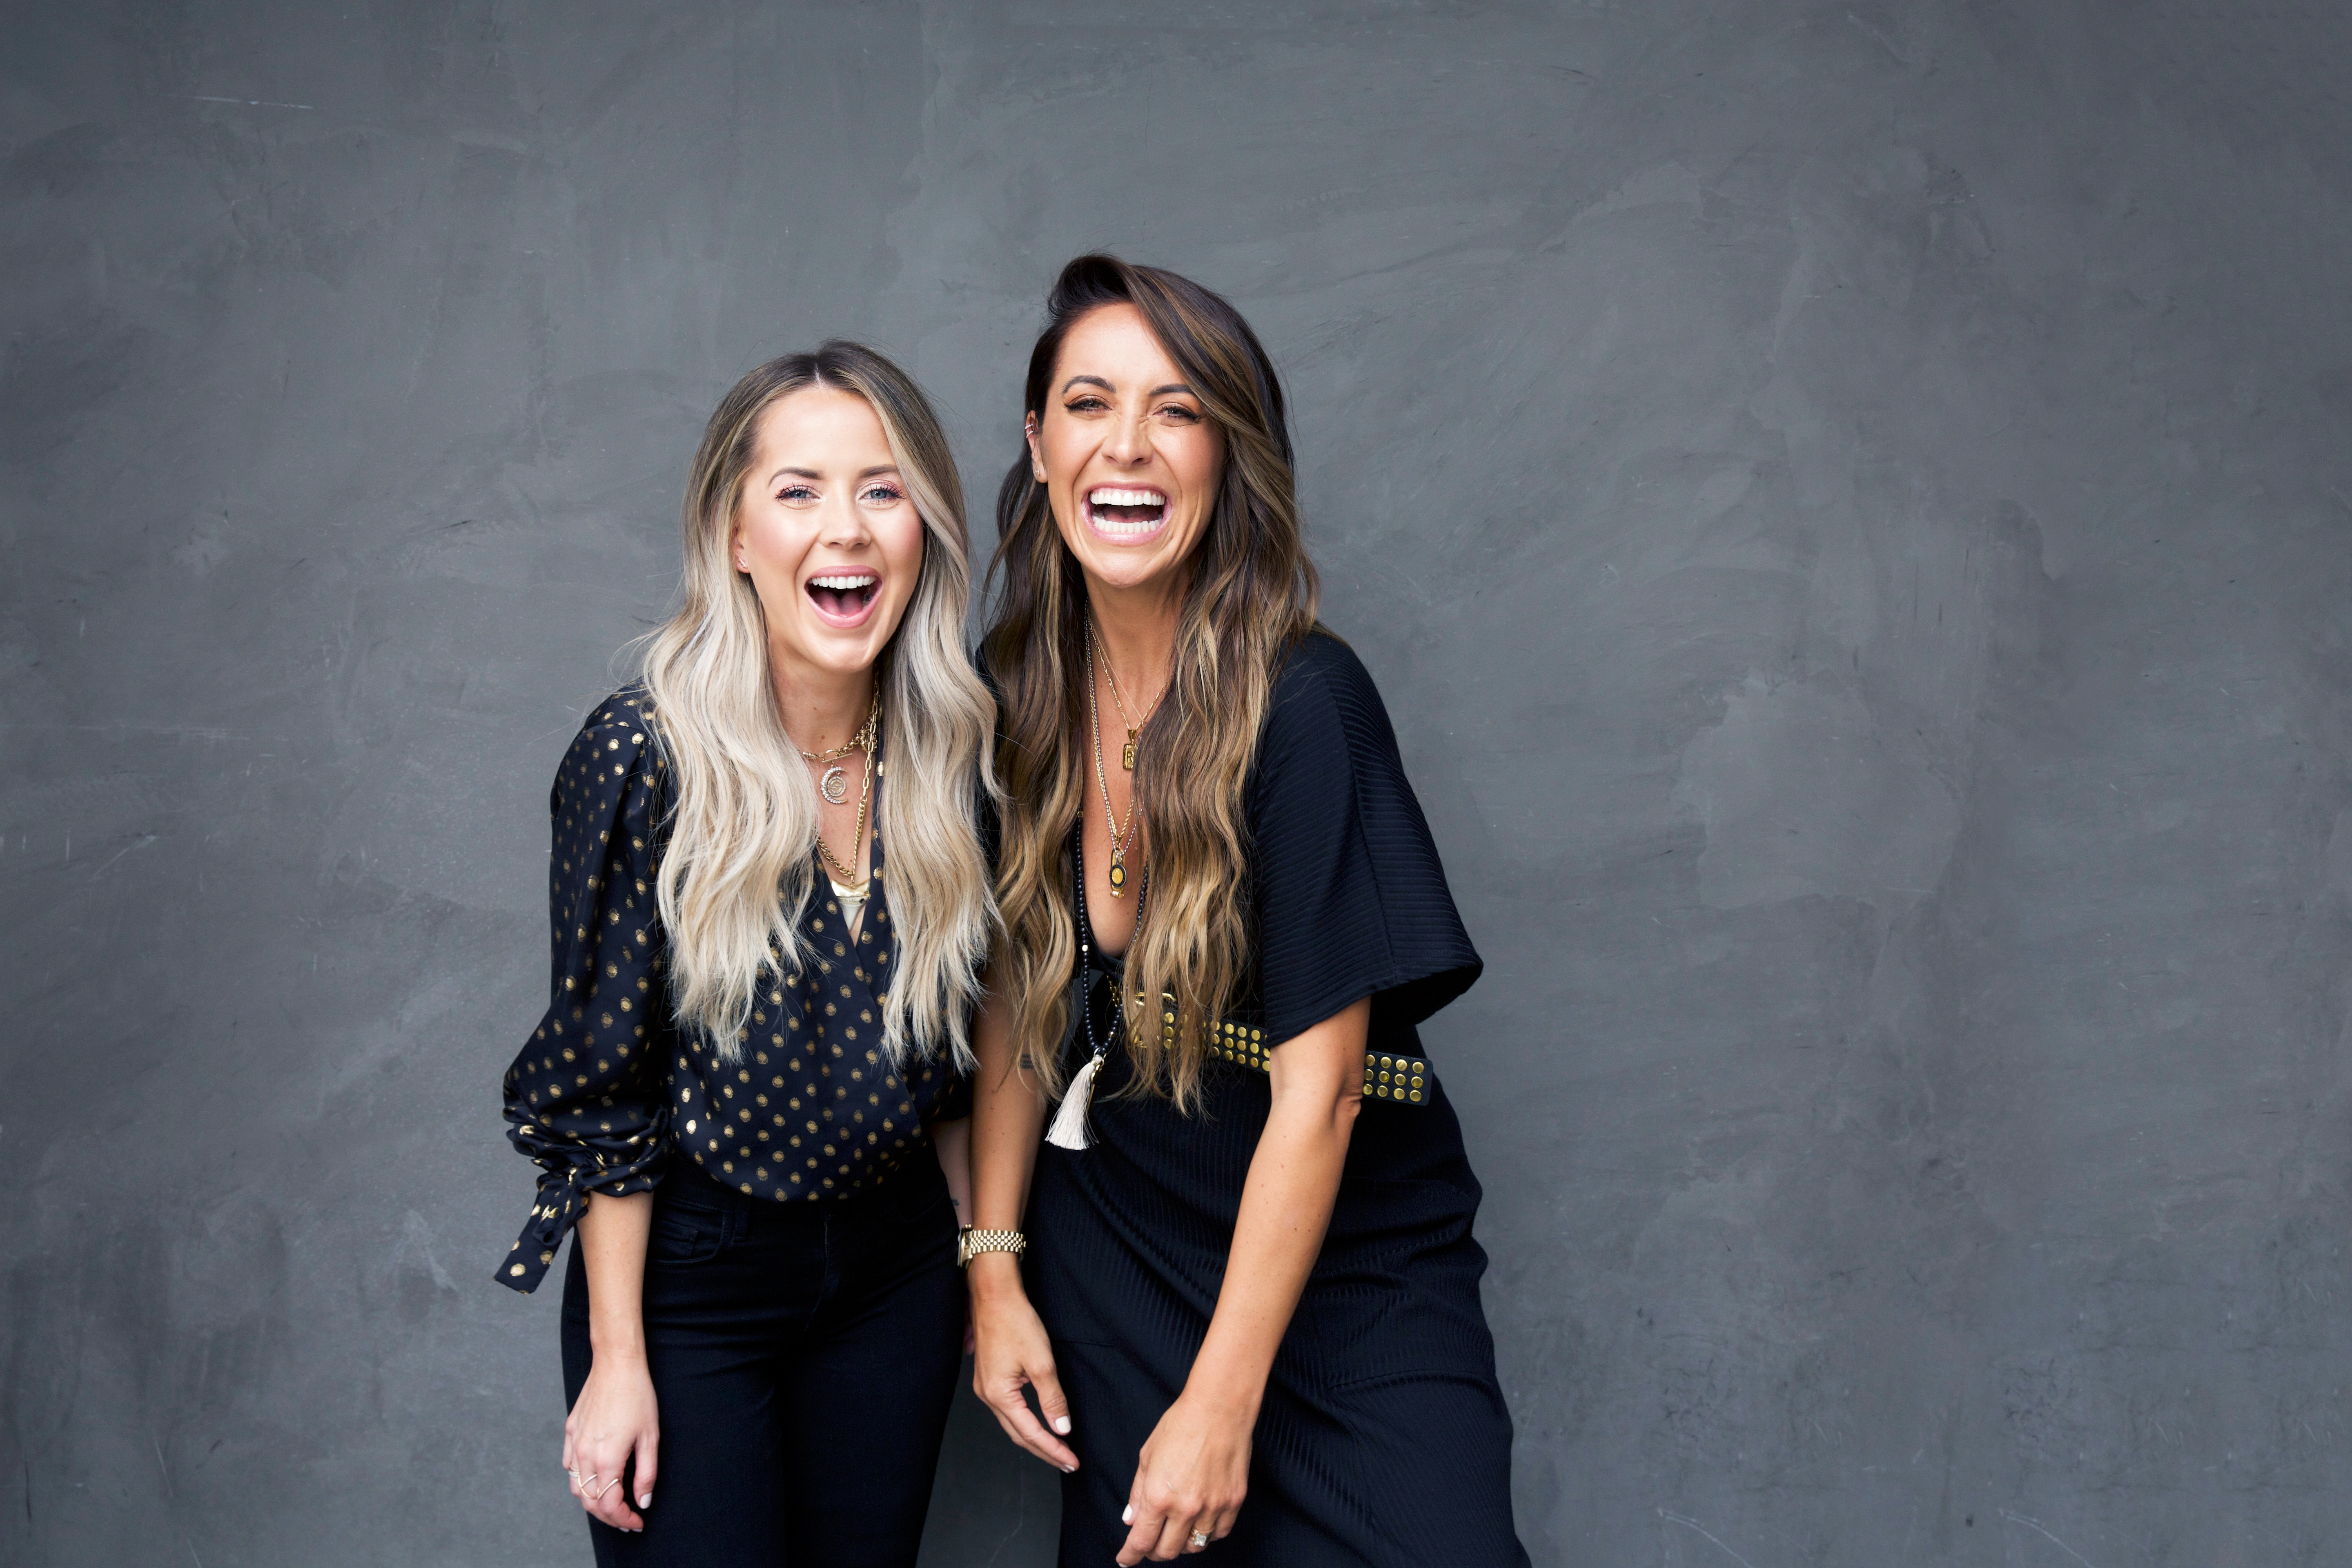 Beauty bosses and best friends, Nikki Lee and Riawna Capri launch In Common Beauty in partnership with Luxury Brand Partners.